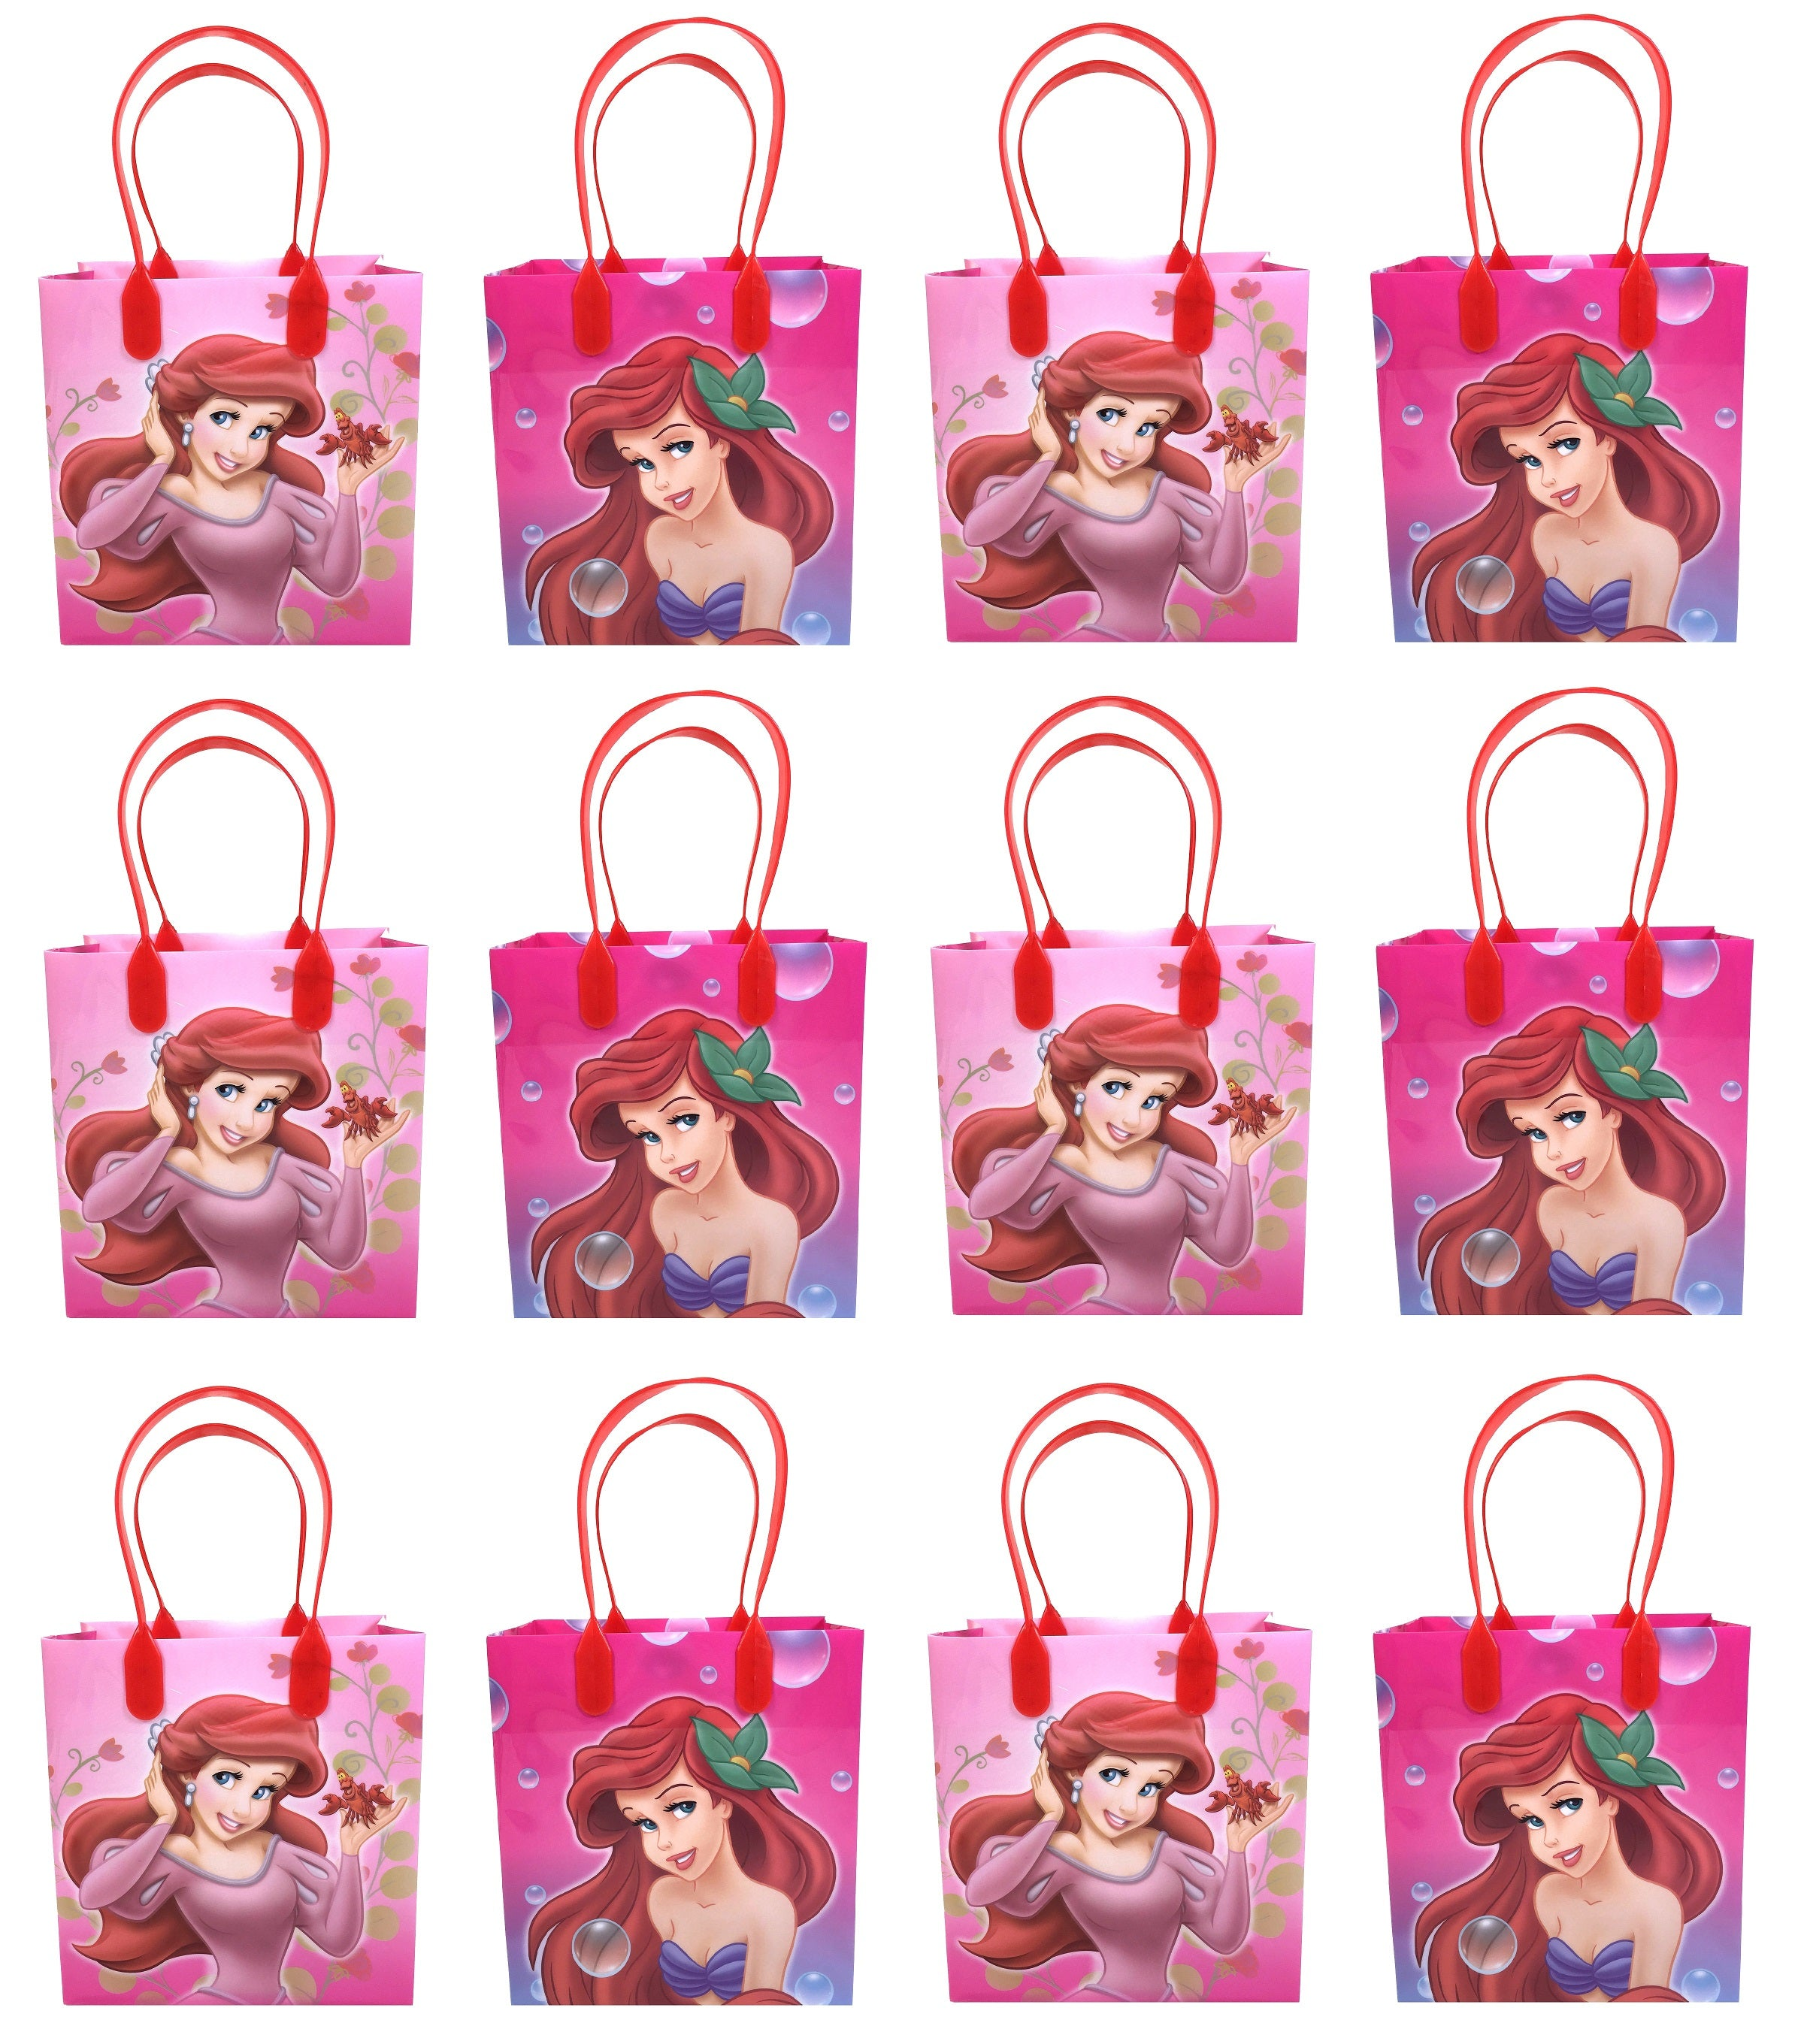 b78bfb7e98f Disney Ariel Little Mermaid Goody Bags Party Favors Gift Bags ...